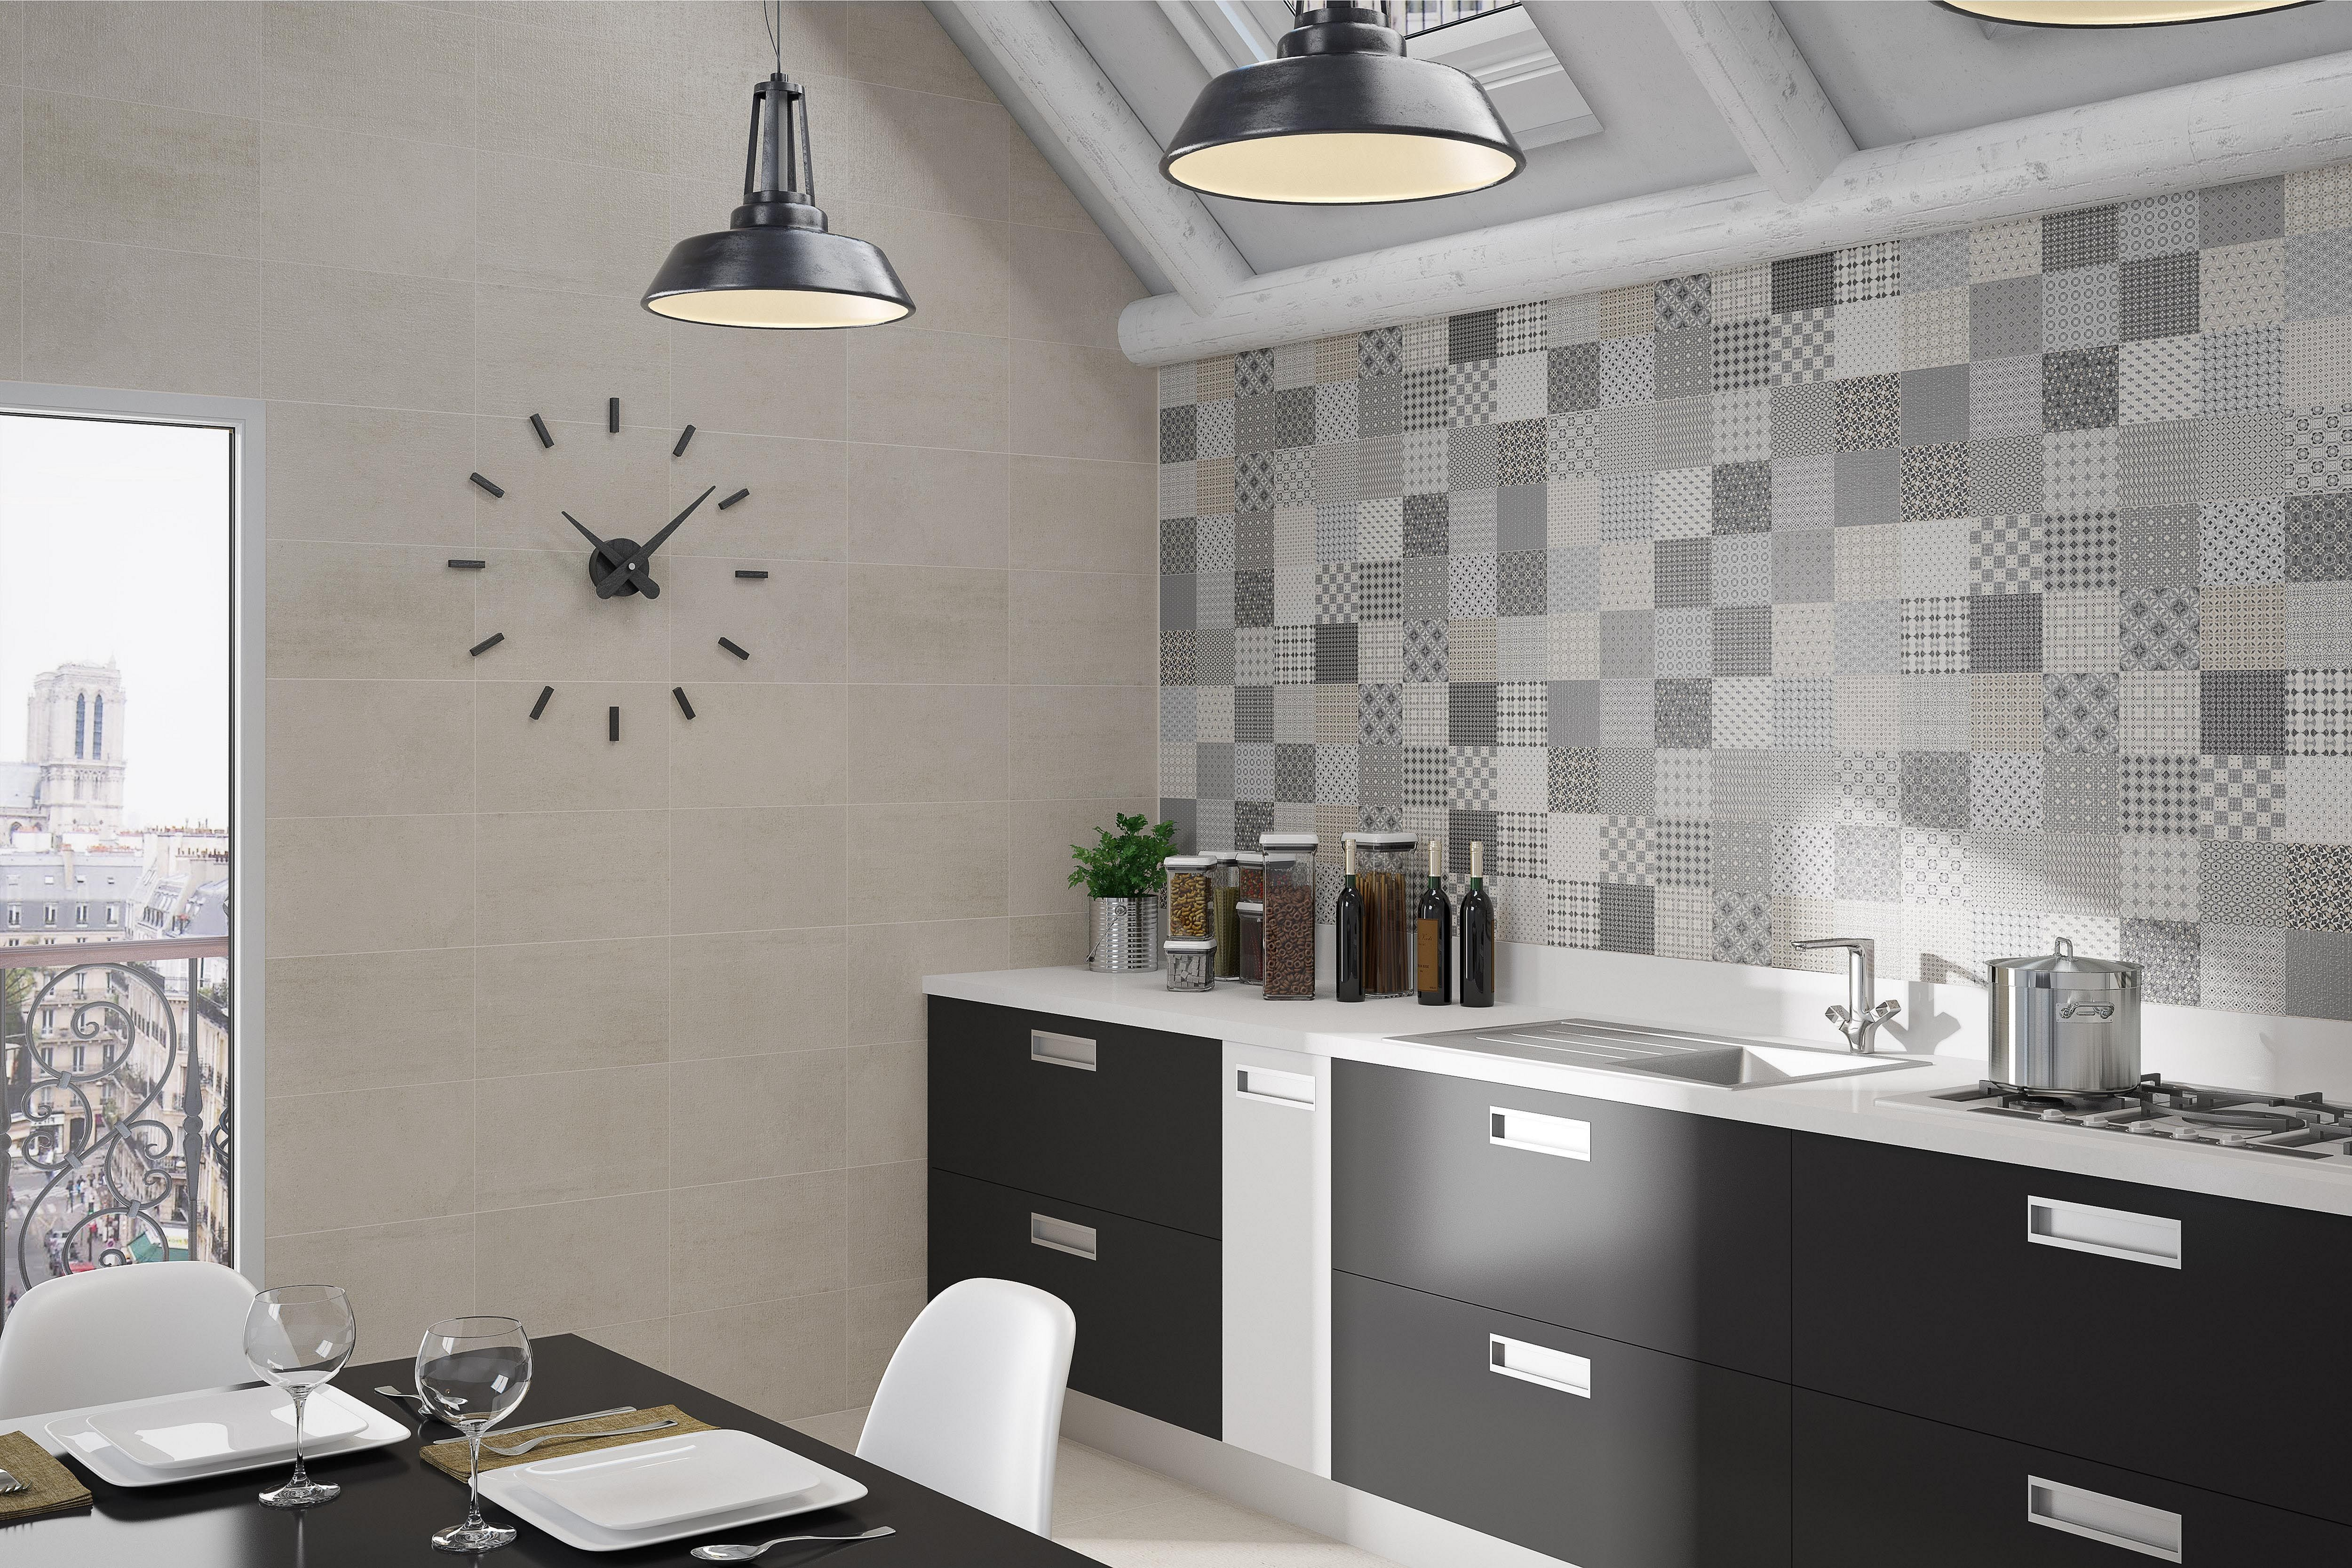 Best And Awesome Kitchen Wall Tile Ideas You Must Try Teracee Kitchen Wall Tiles Modern Kitchen Wall Tiles Design Kitchen Wall Tiles